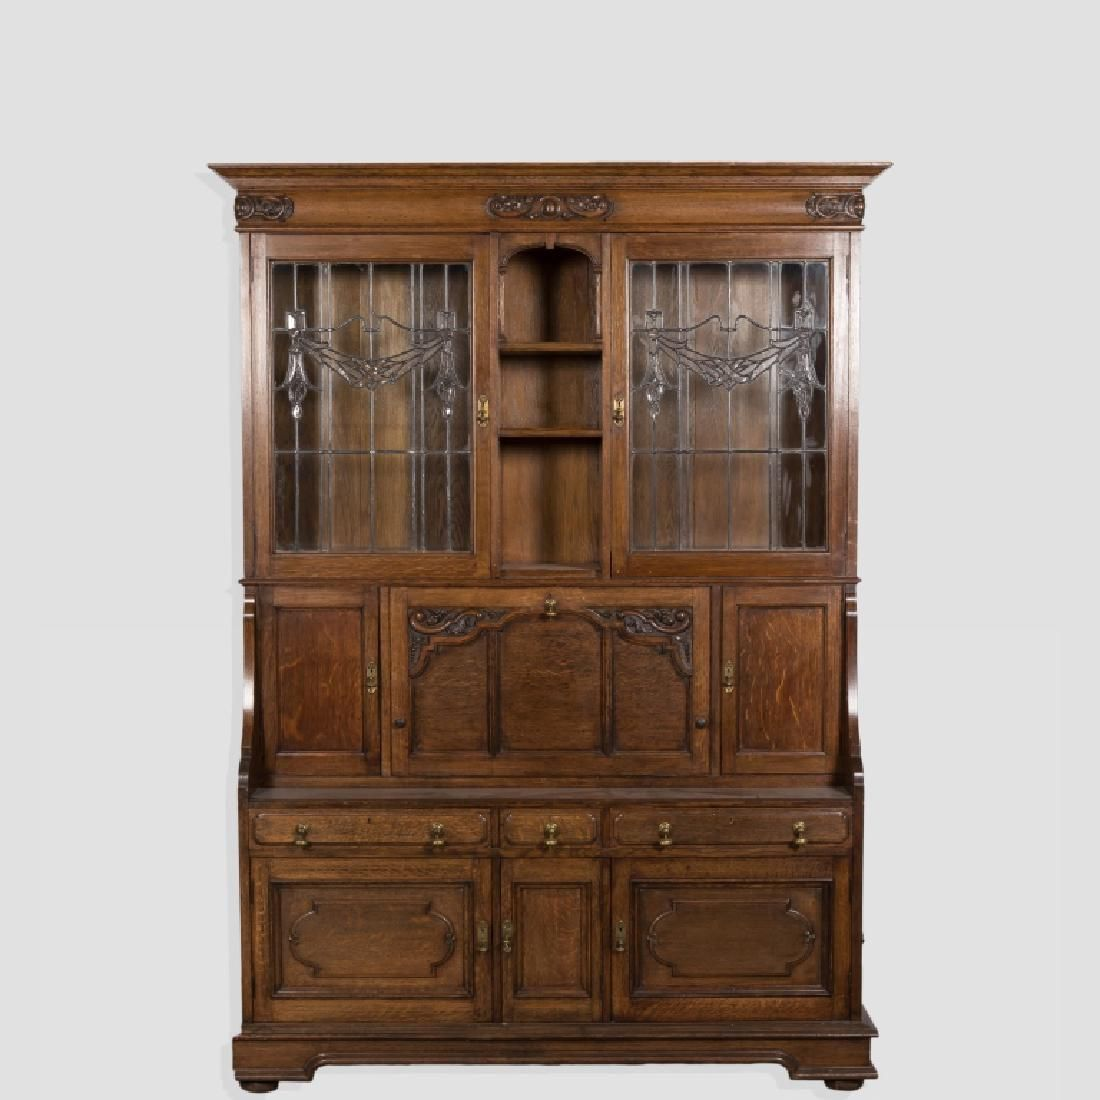 Large carved oak breakfront with leaded glass doors and drop down secretary desk